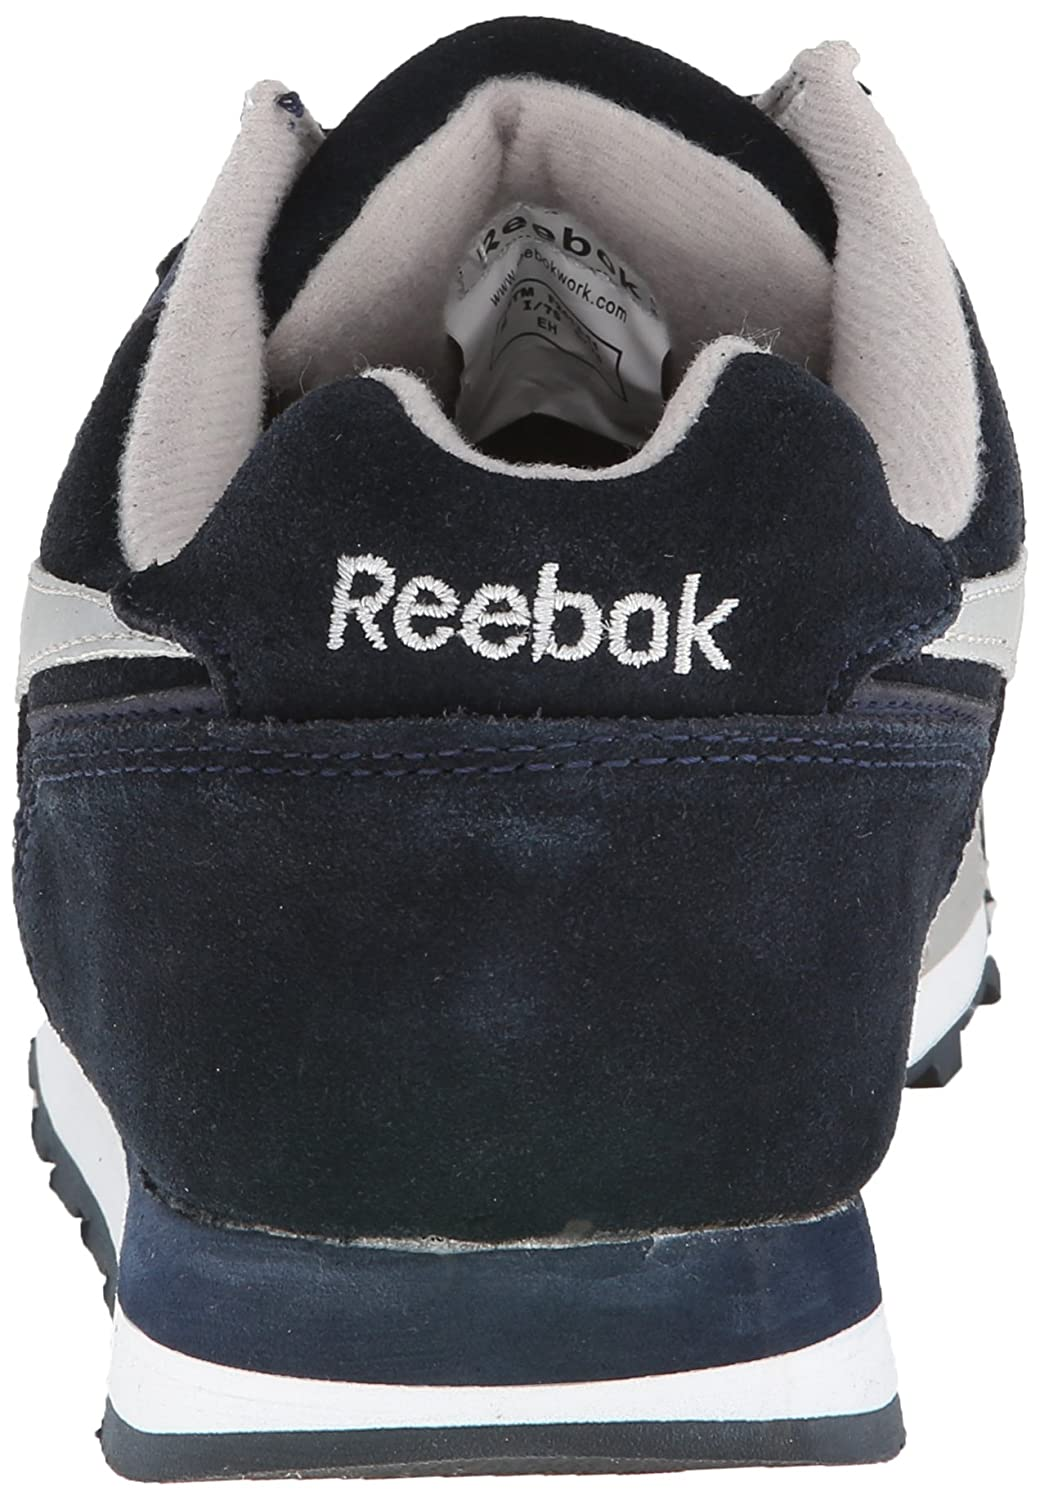 1a8987e6b084 Amazon.com  Reebok Work Men s Leelap RB1975 EH Athletic Safety Shoe  Shoes